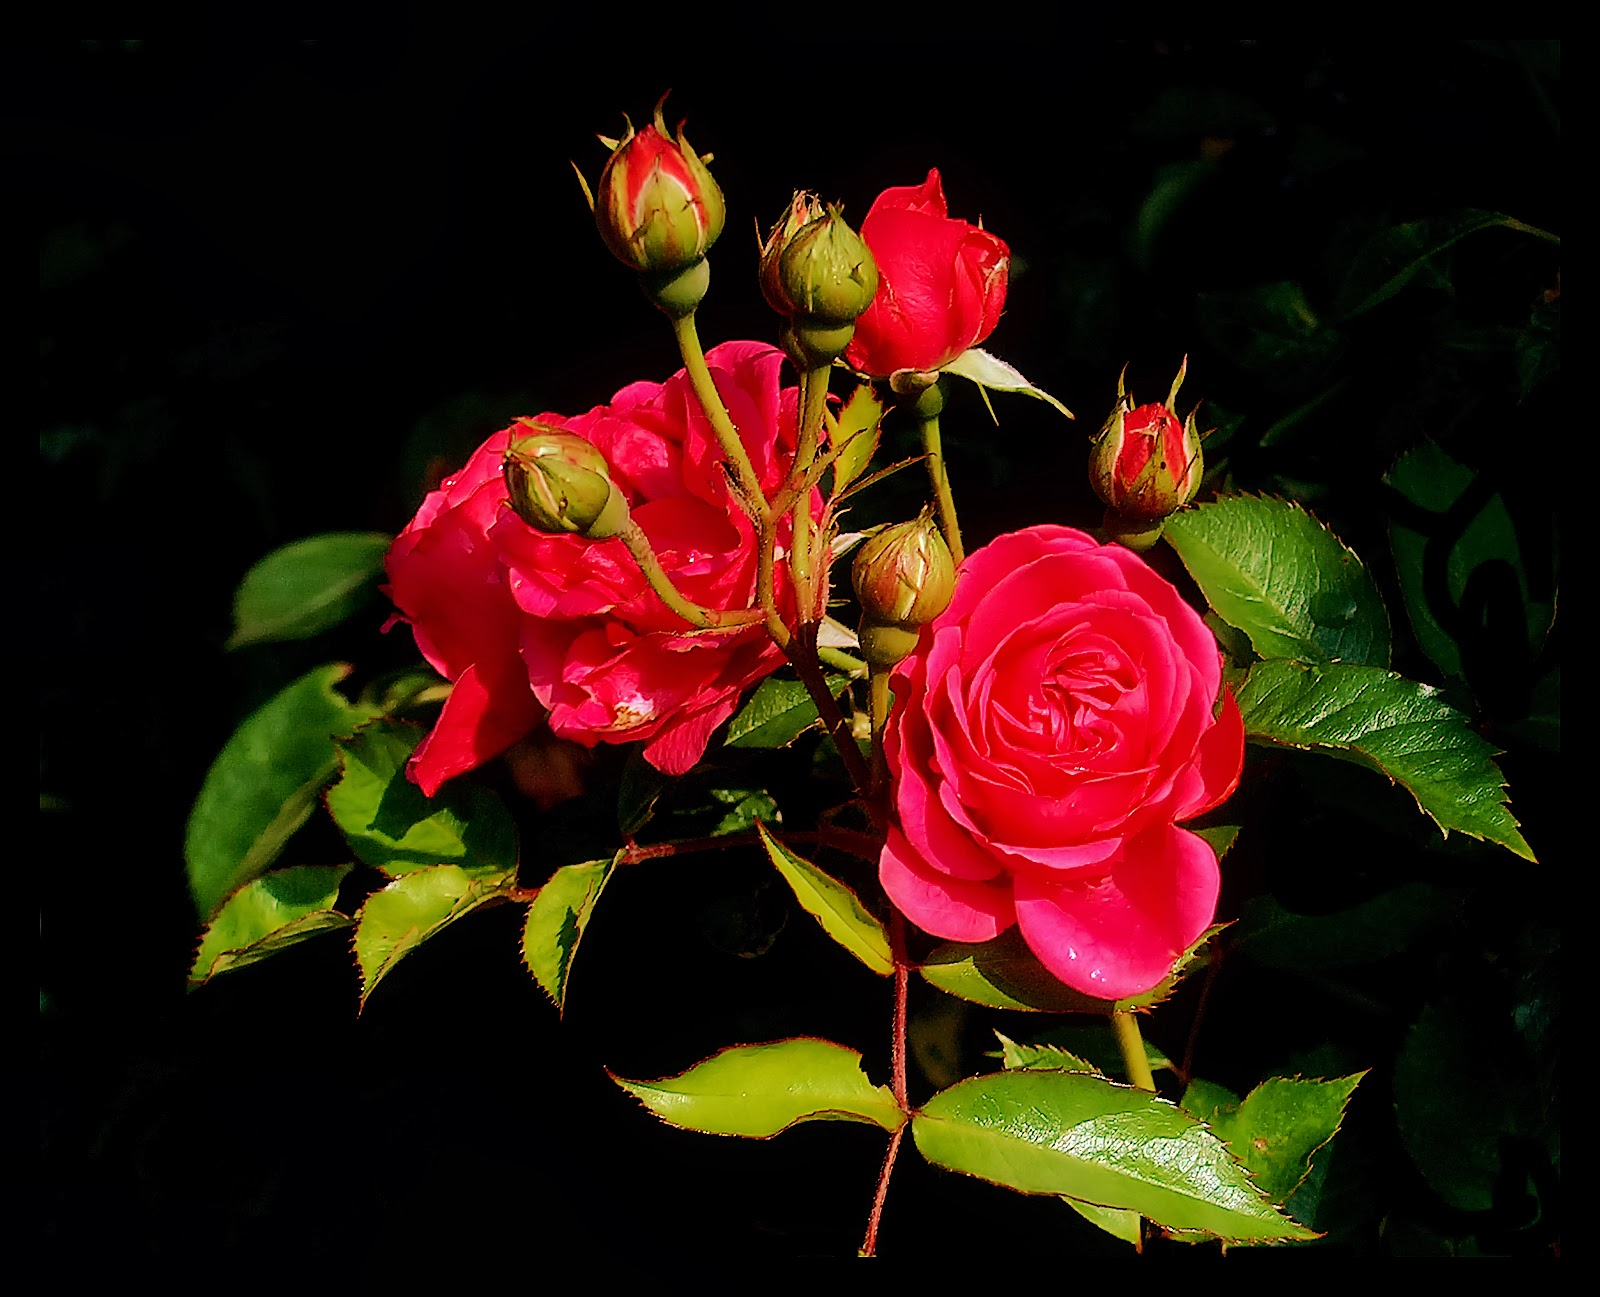 oneimirate.blogspot: mind blowing hd red rose wallpaper